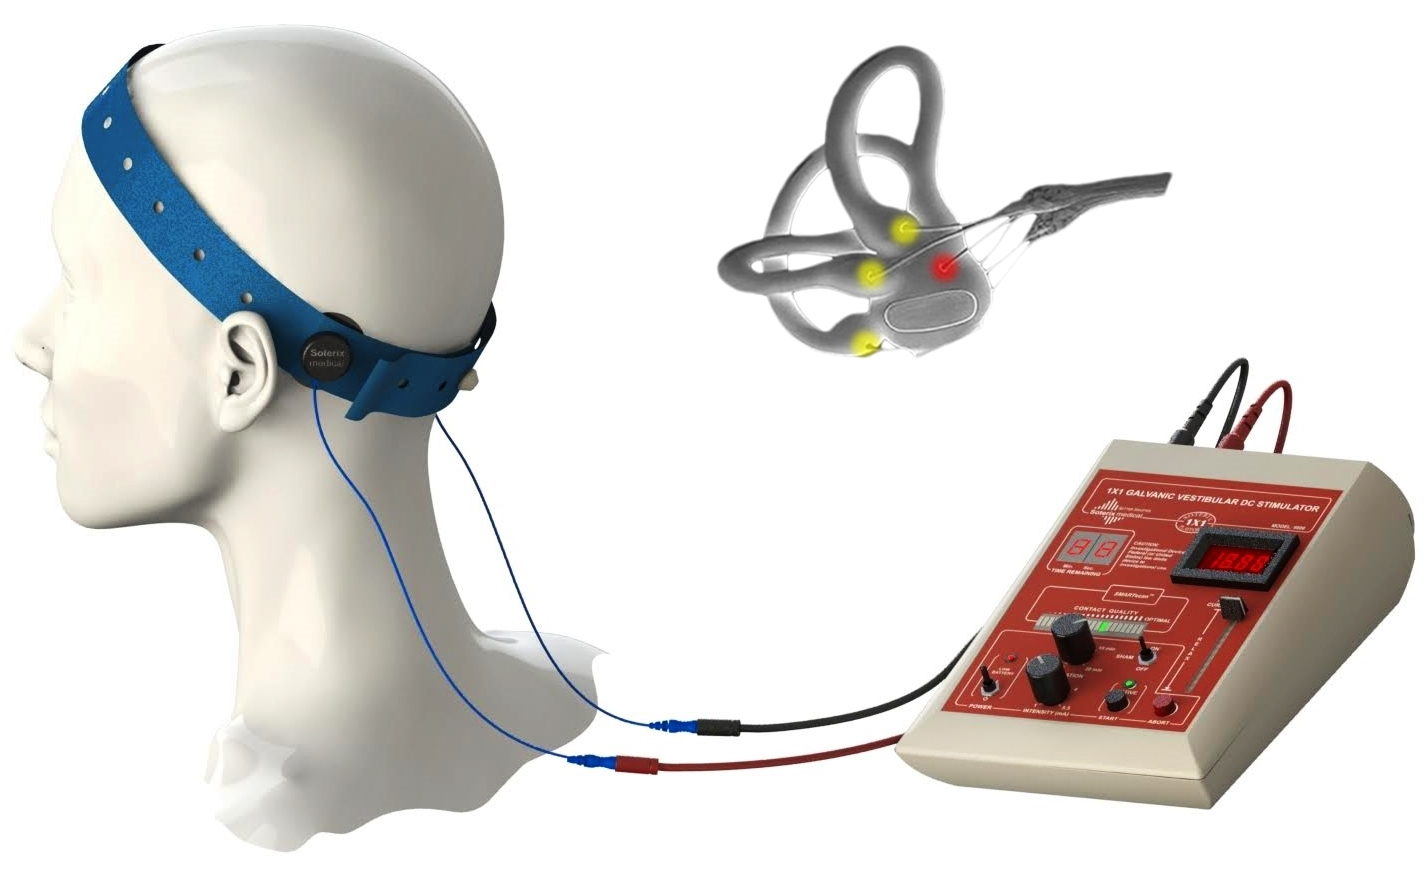 Neuromodulation Devices Market Report - Industry Trends And Growth Analysis 2018 to 2025